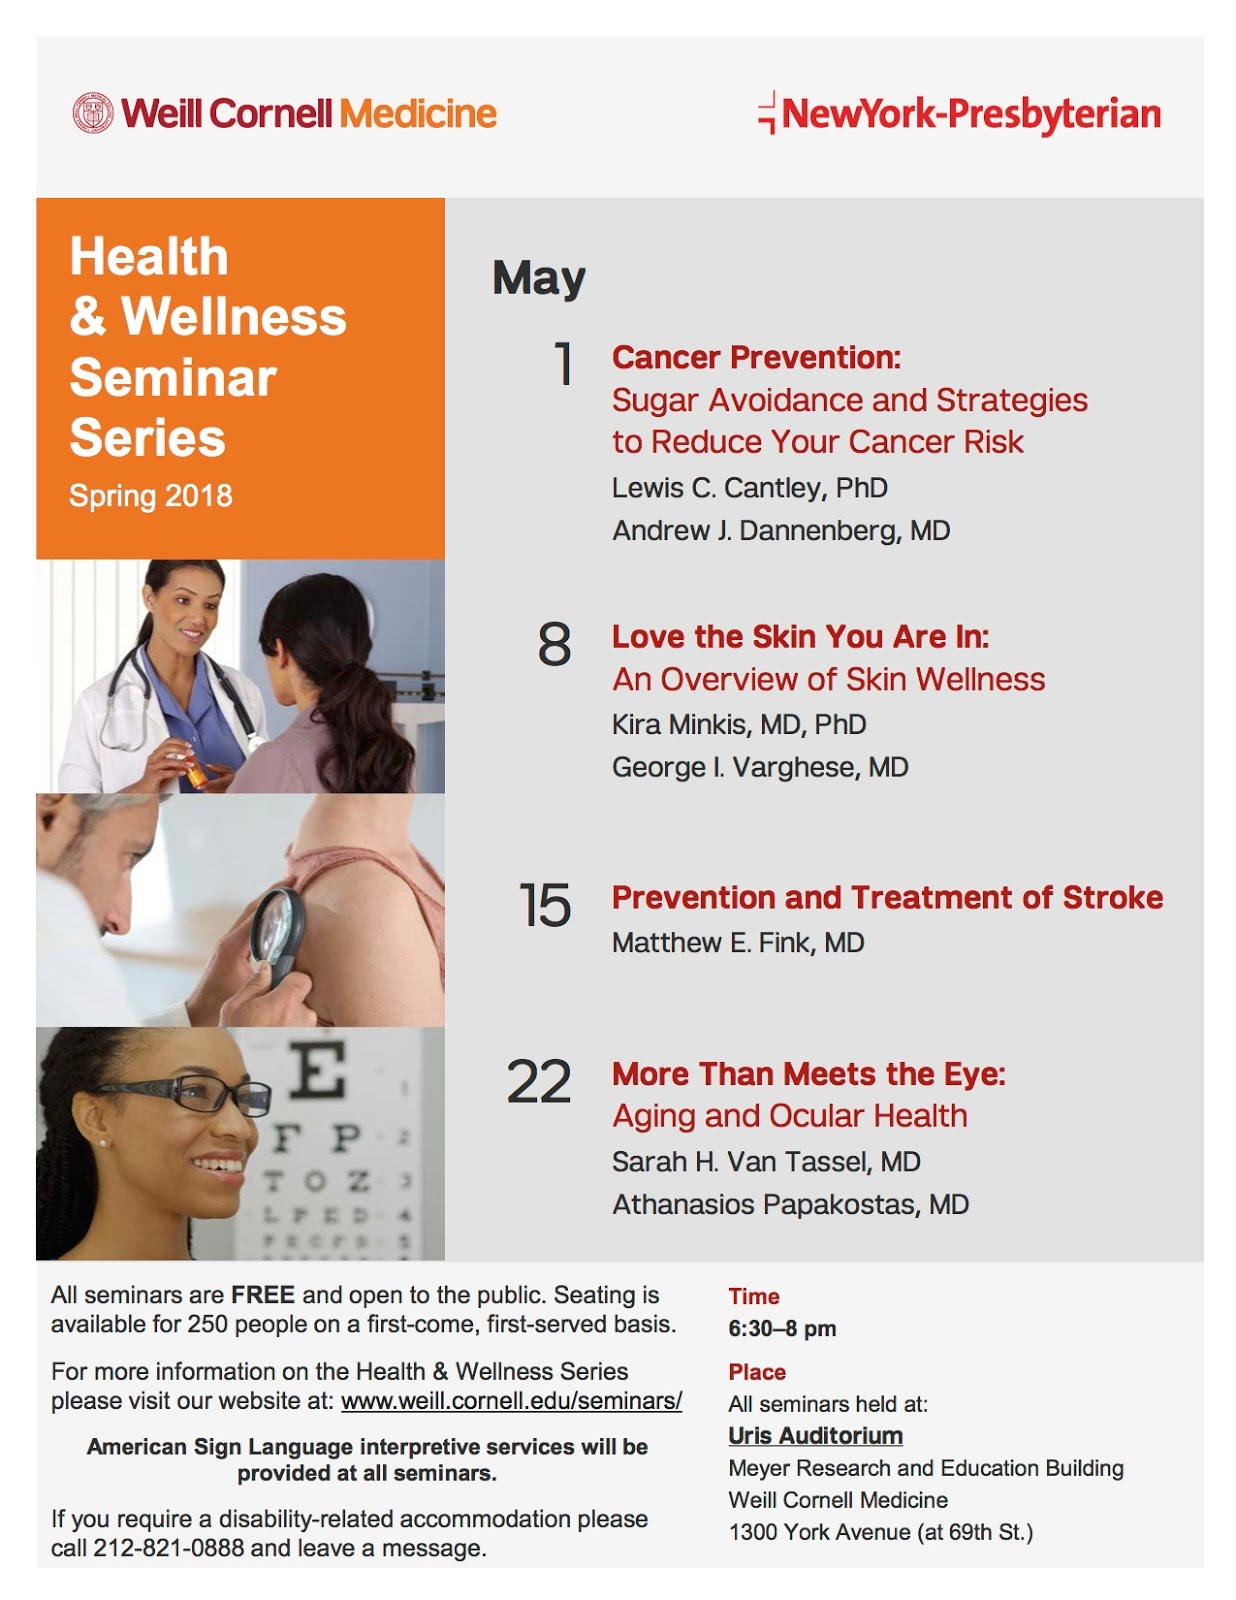 You're Invited To Weill Cornell Medicine - NY Presbyterian Health & Welnness Seminars